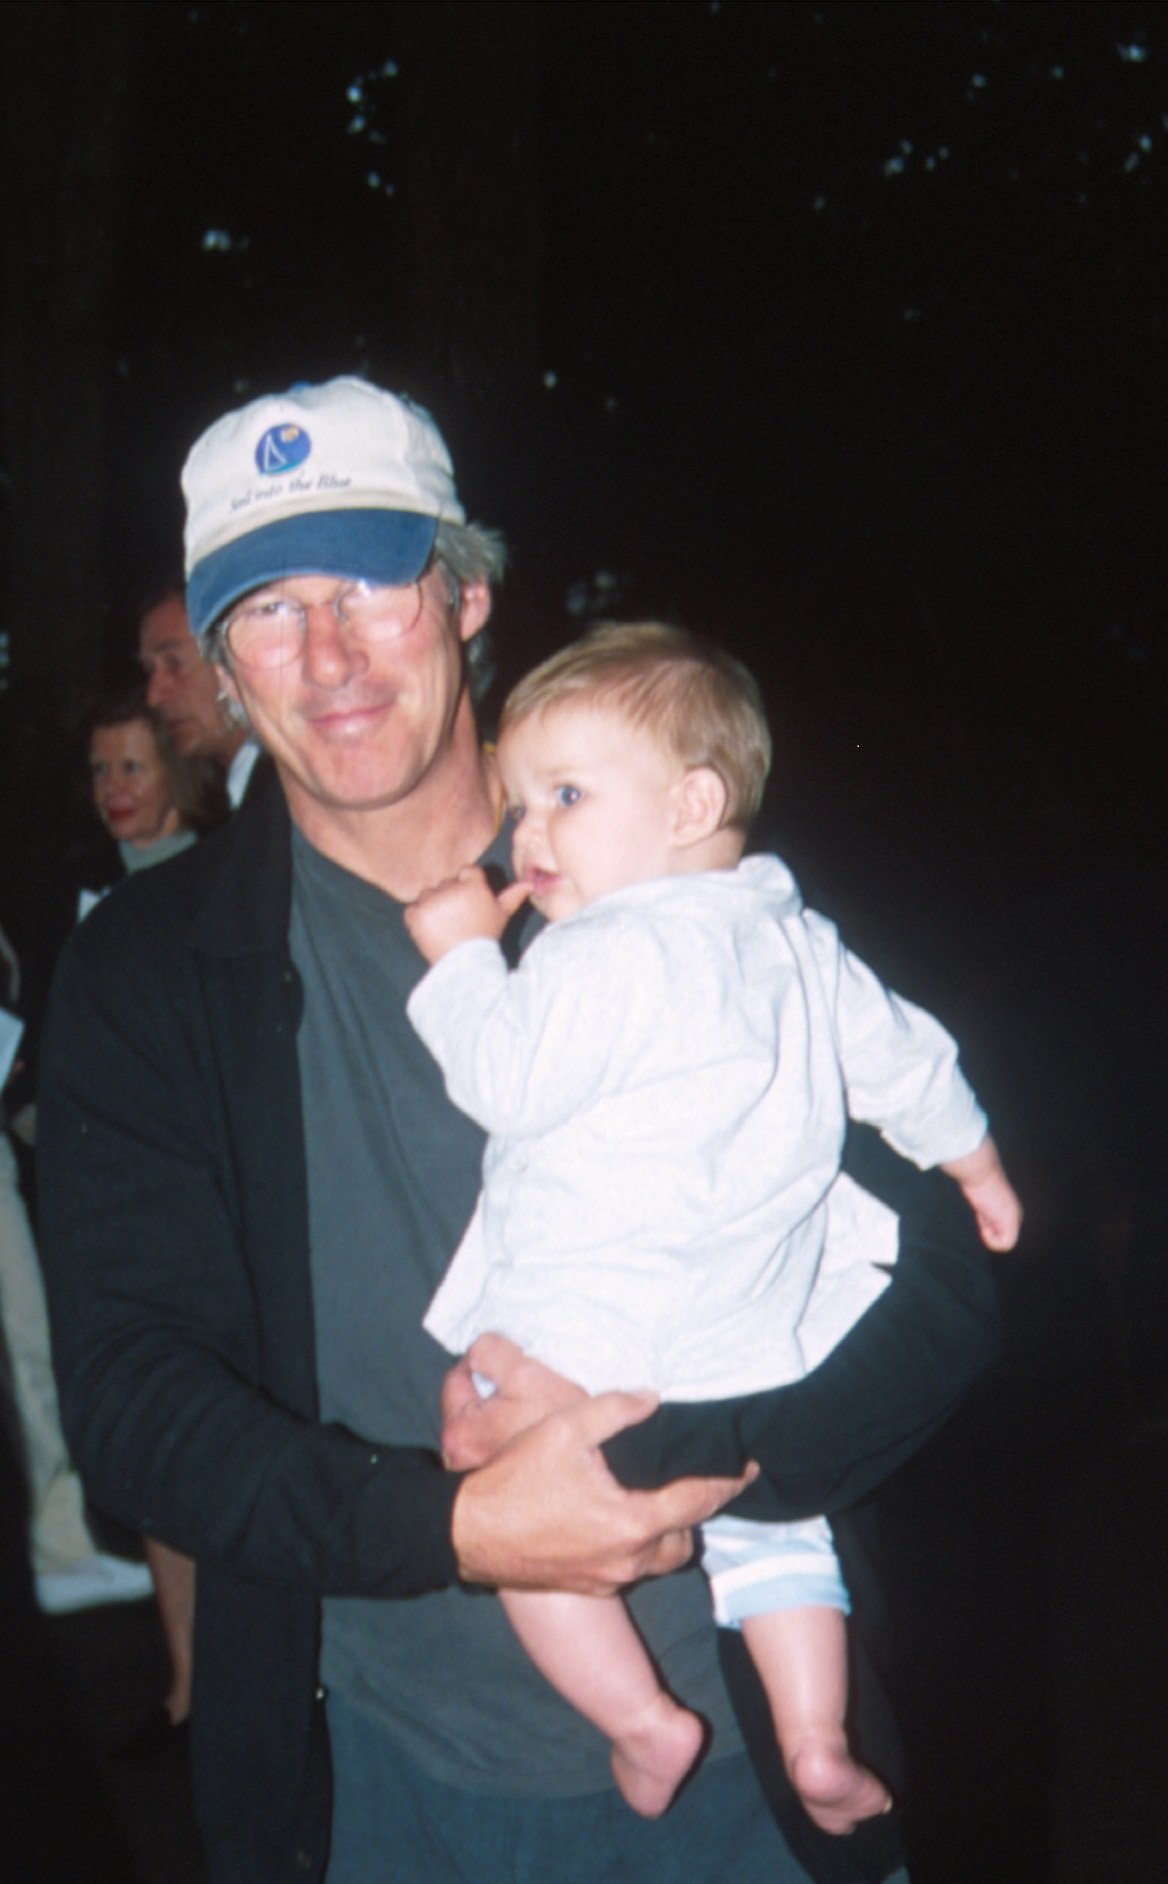 Richard Gere y su hijo Homer James Jigme Gere en agosto del 2000 en Watermill, Nueva York || Fuente: Getty Images